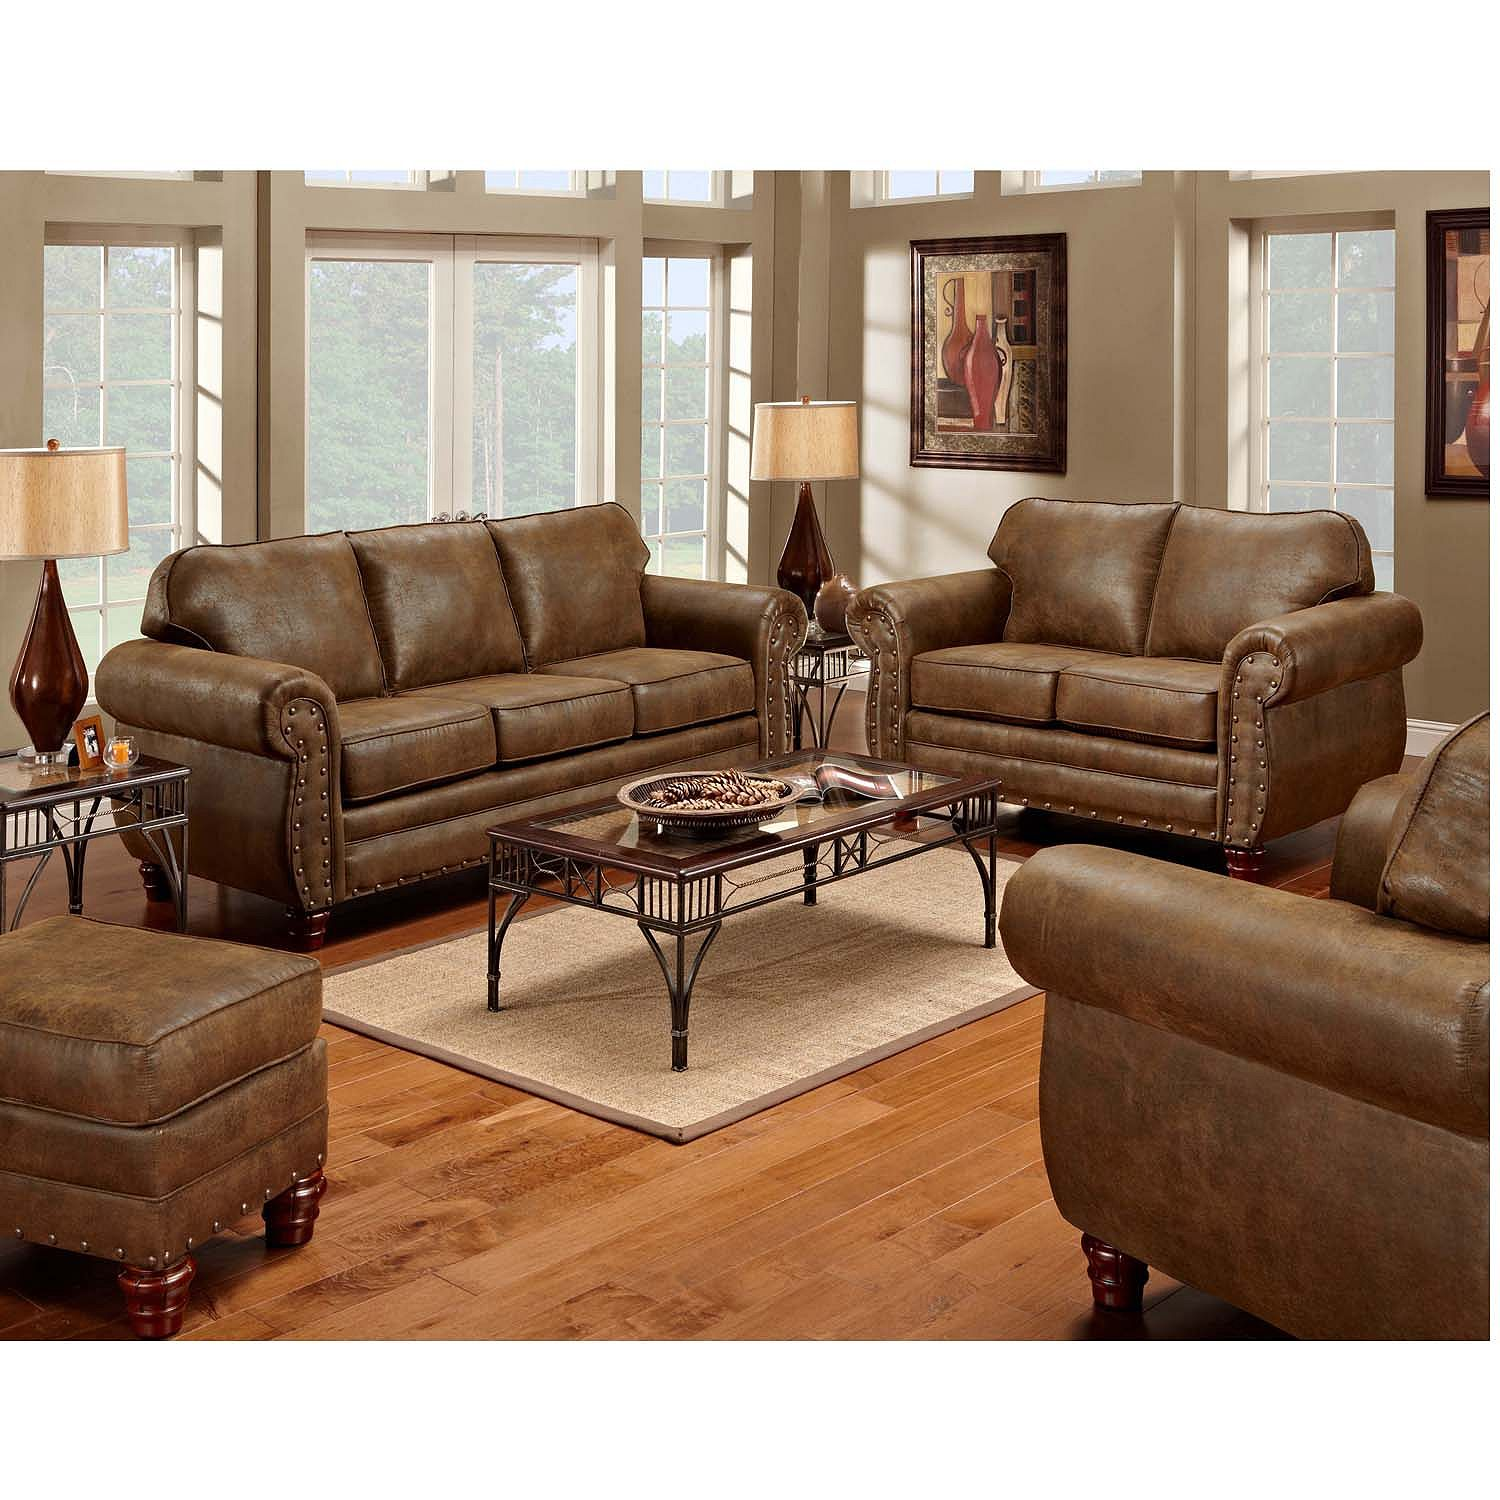 Leather Living Room Chair Top 4 Comfortable Chairs For Living Room Homesfeed